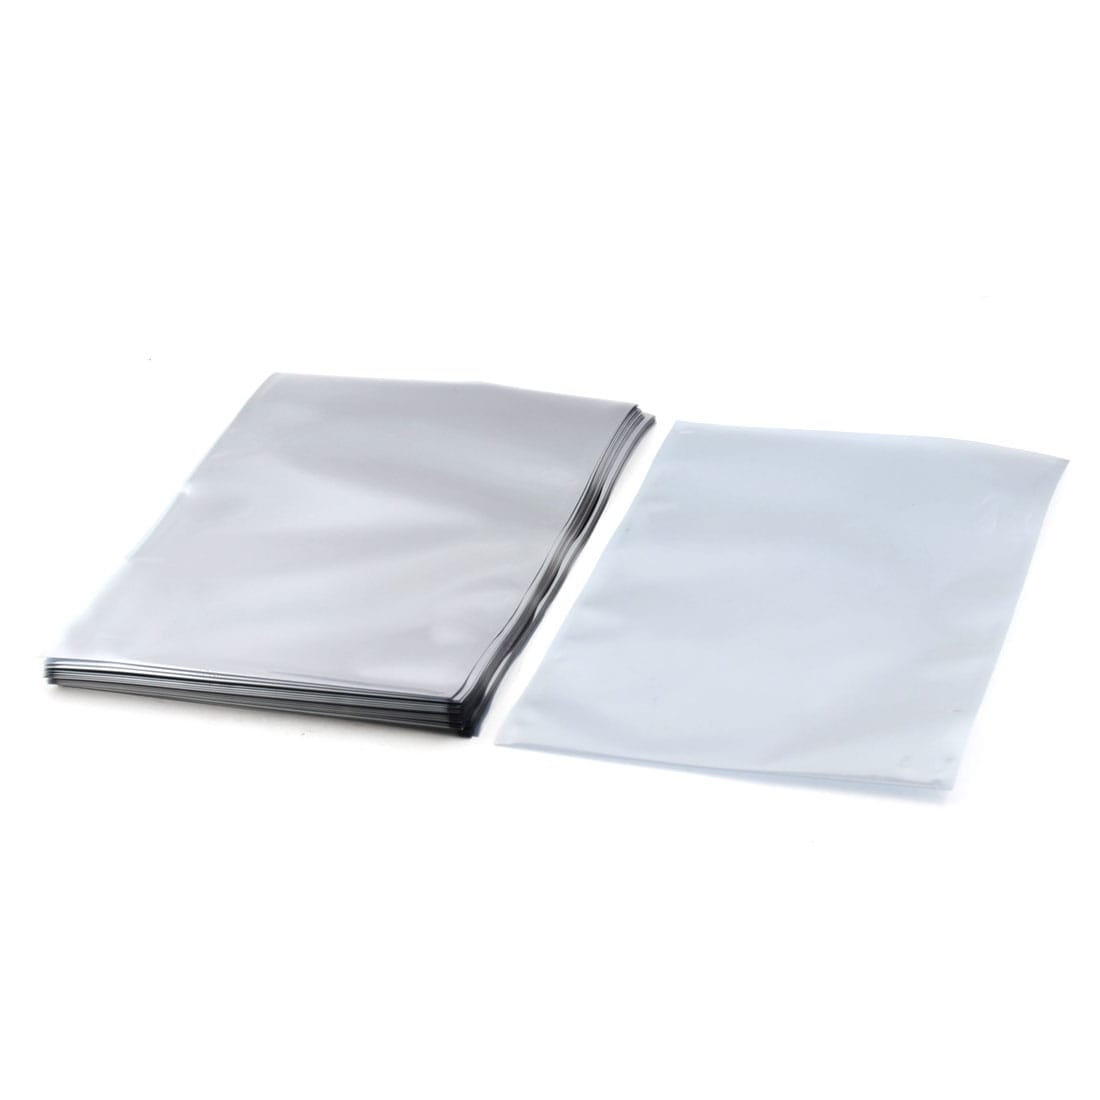 "100 ESD Anti-Static Shielding Bags 7/"" x 10/"" Open-Top"